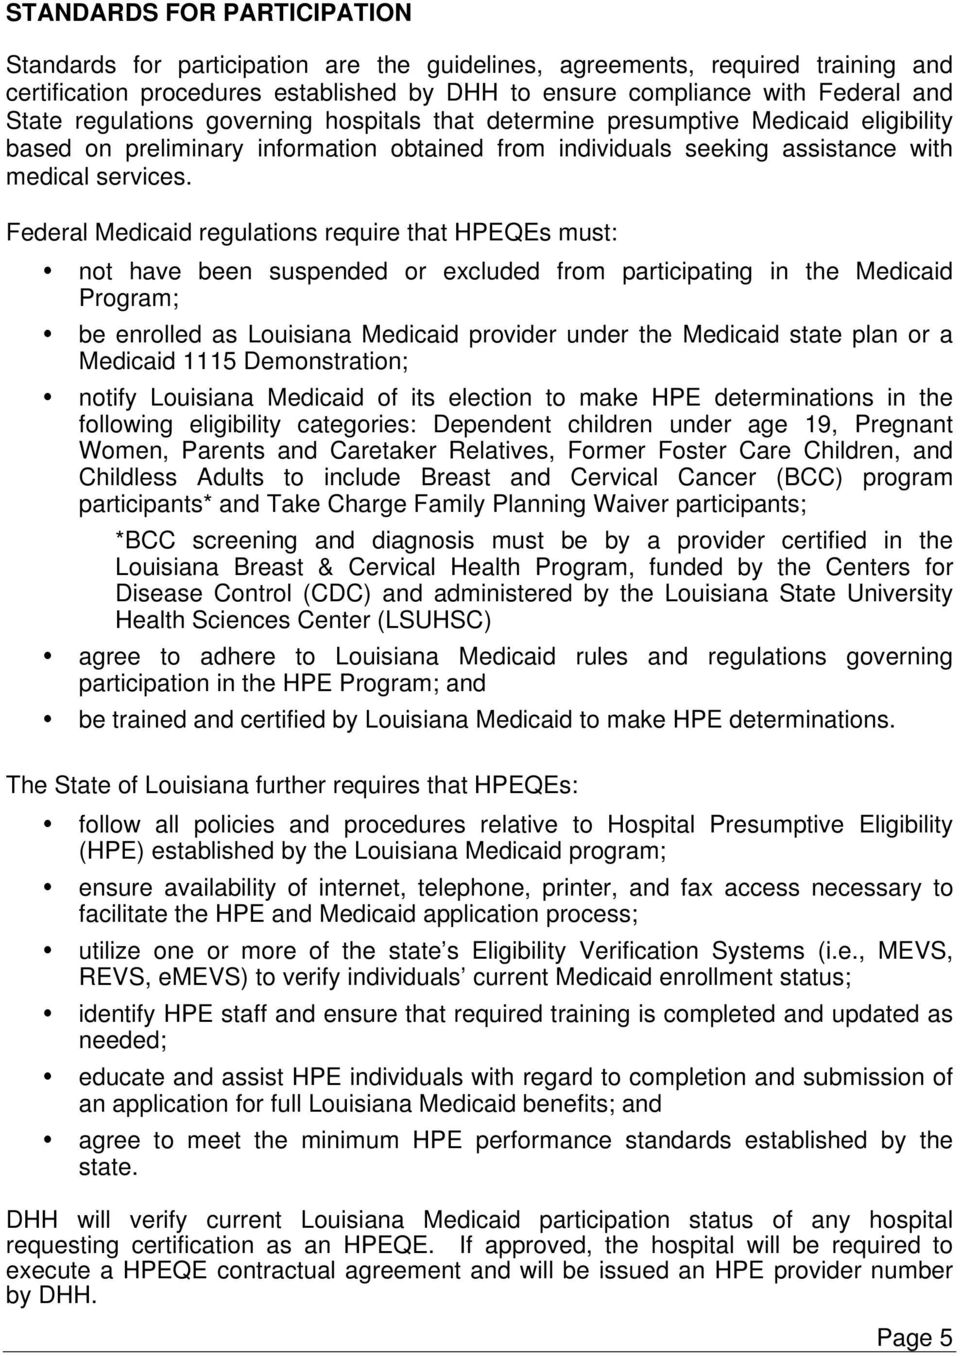 Federal Medicaid regulations require that HPEQEs must: not have been suspended or excluded from participating in the Medicaid Program; be enrolled as Louisiana Medicaid provider under the Medicaid